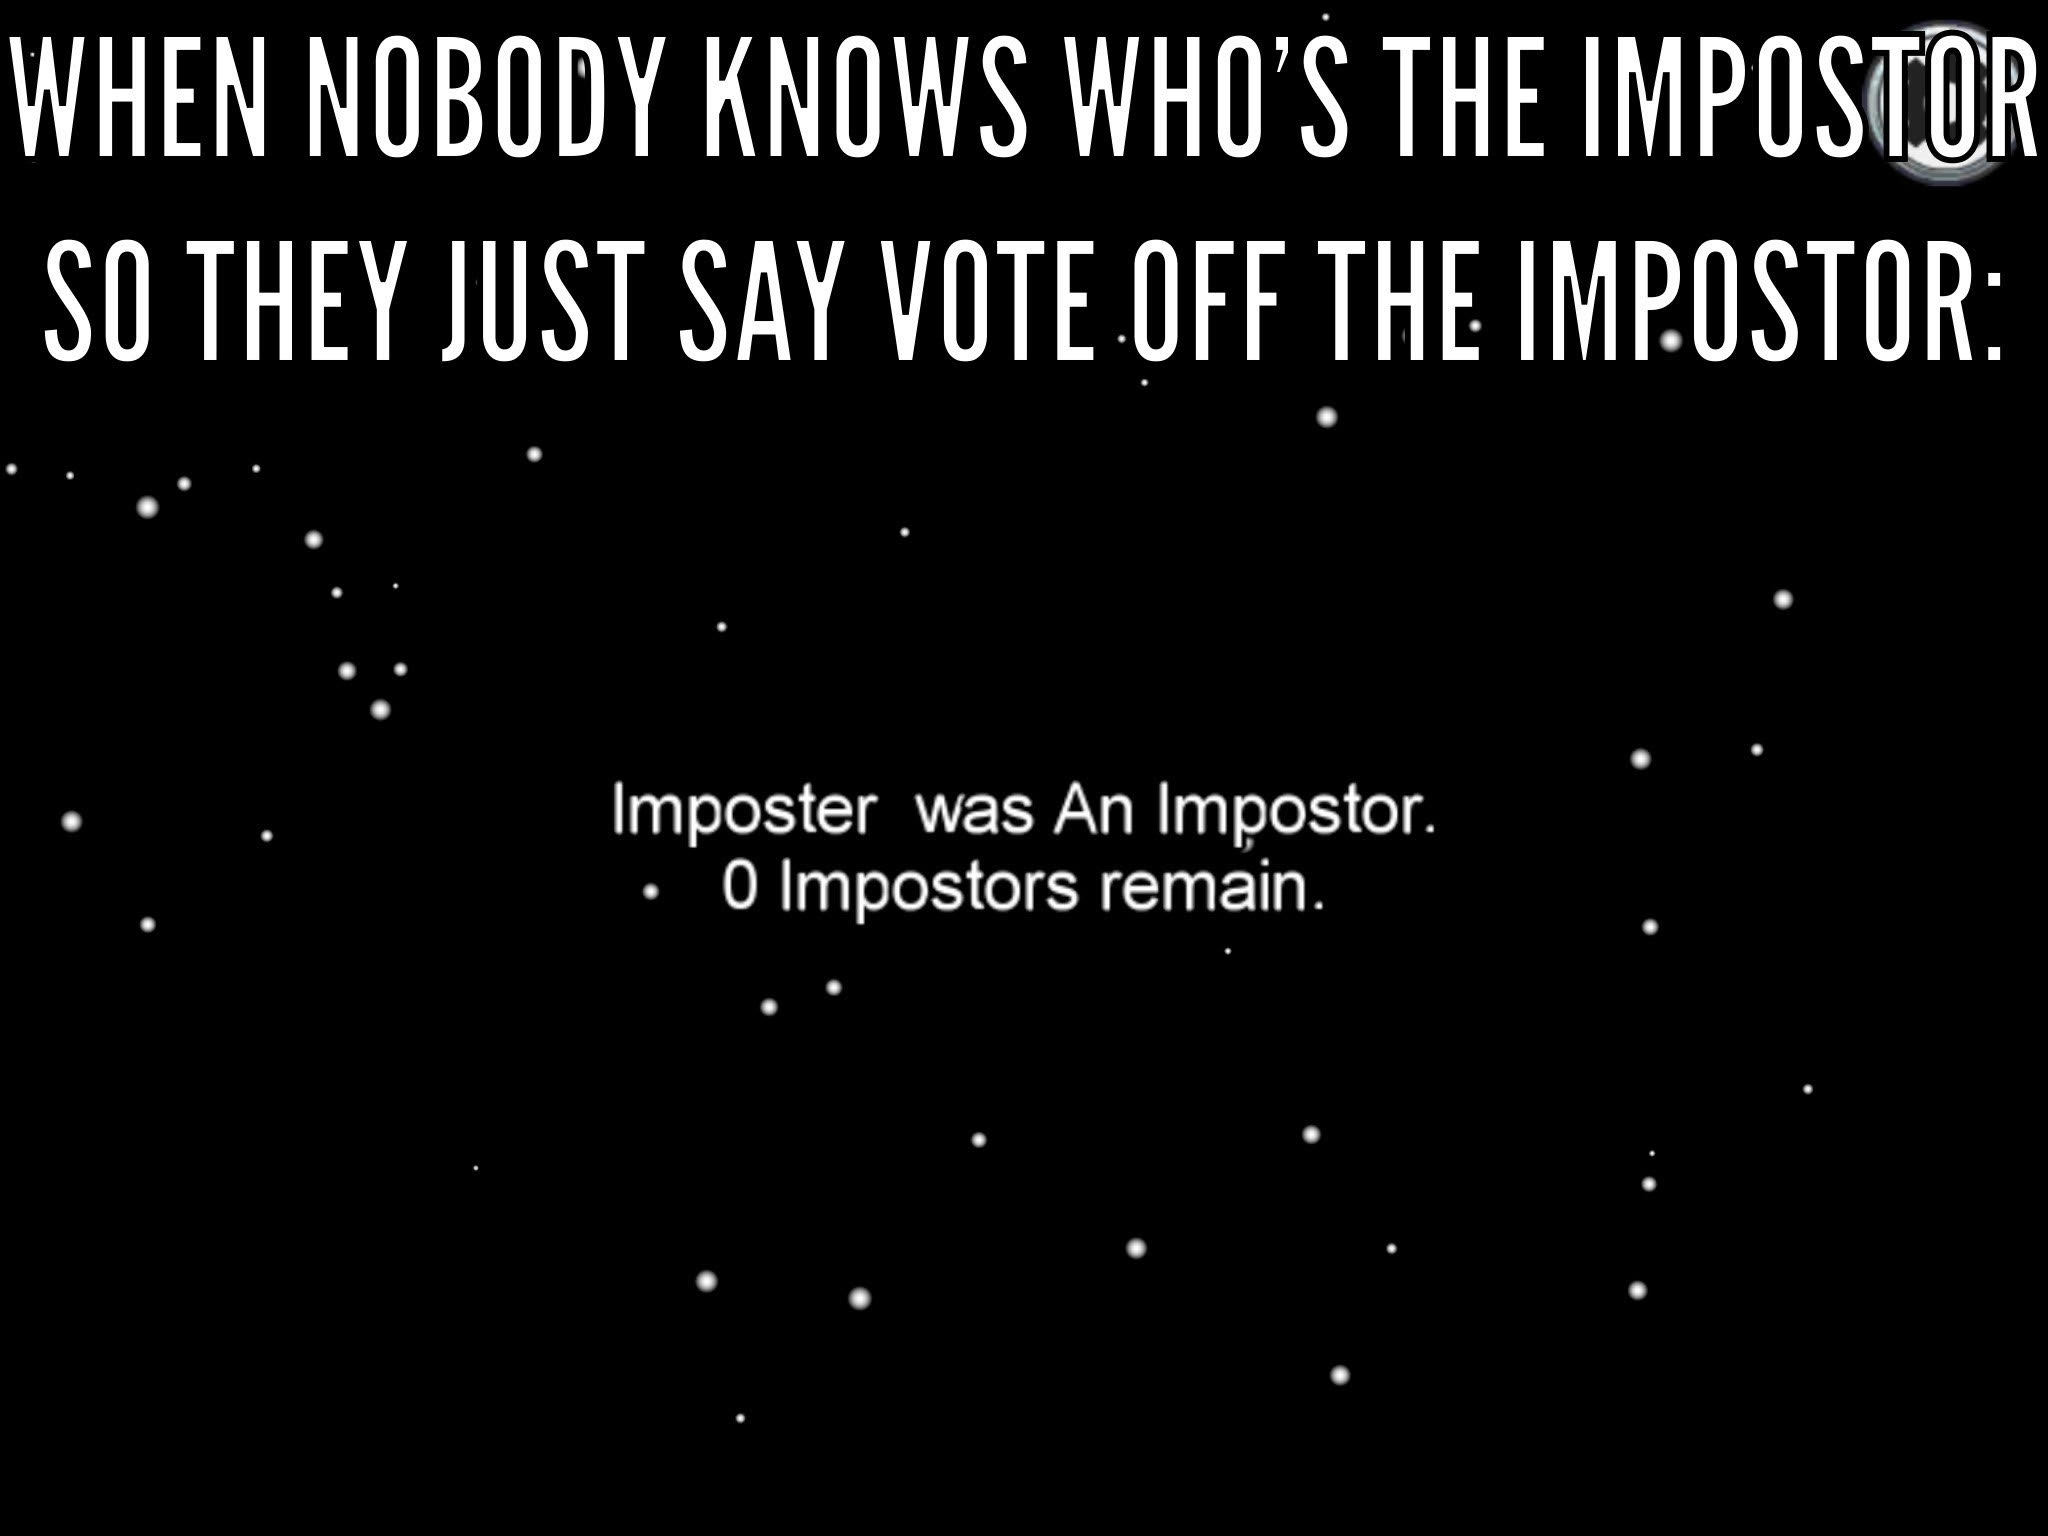 impostor was an imposter meme